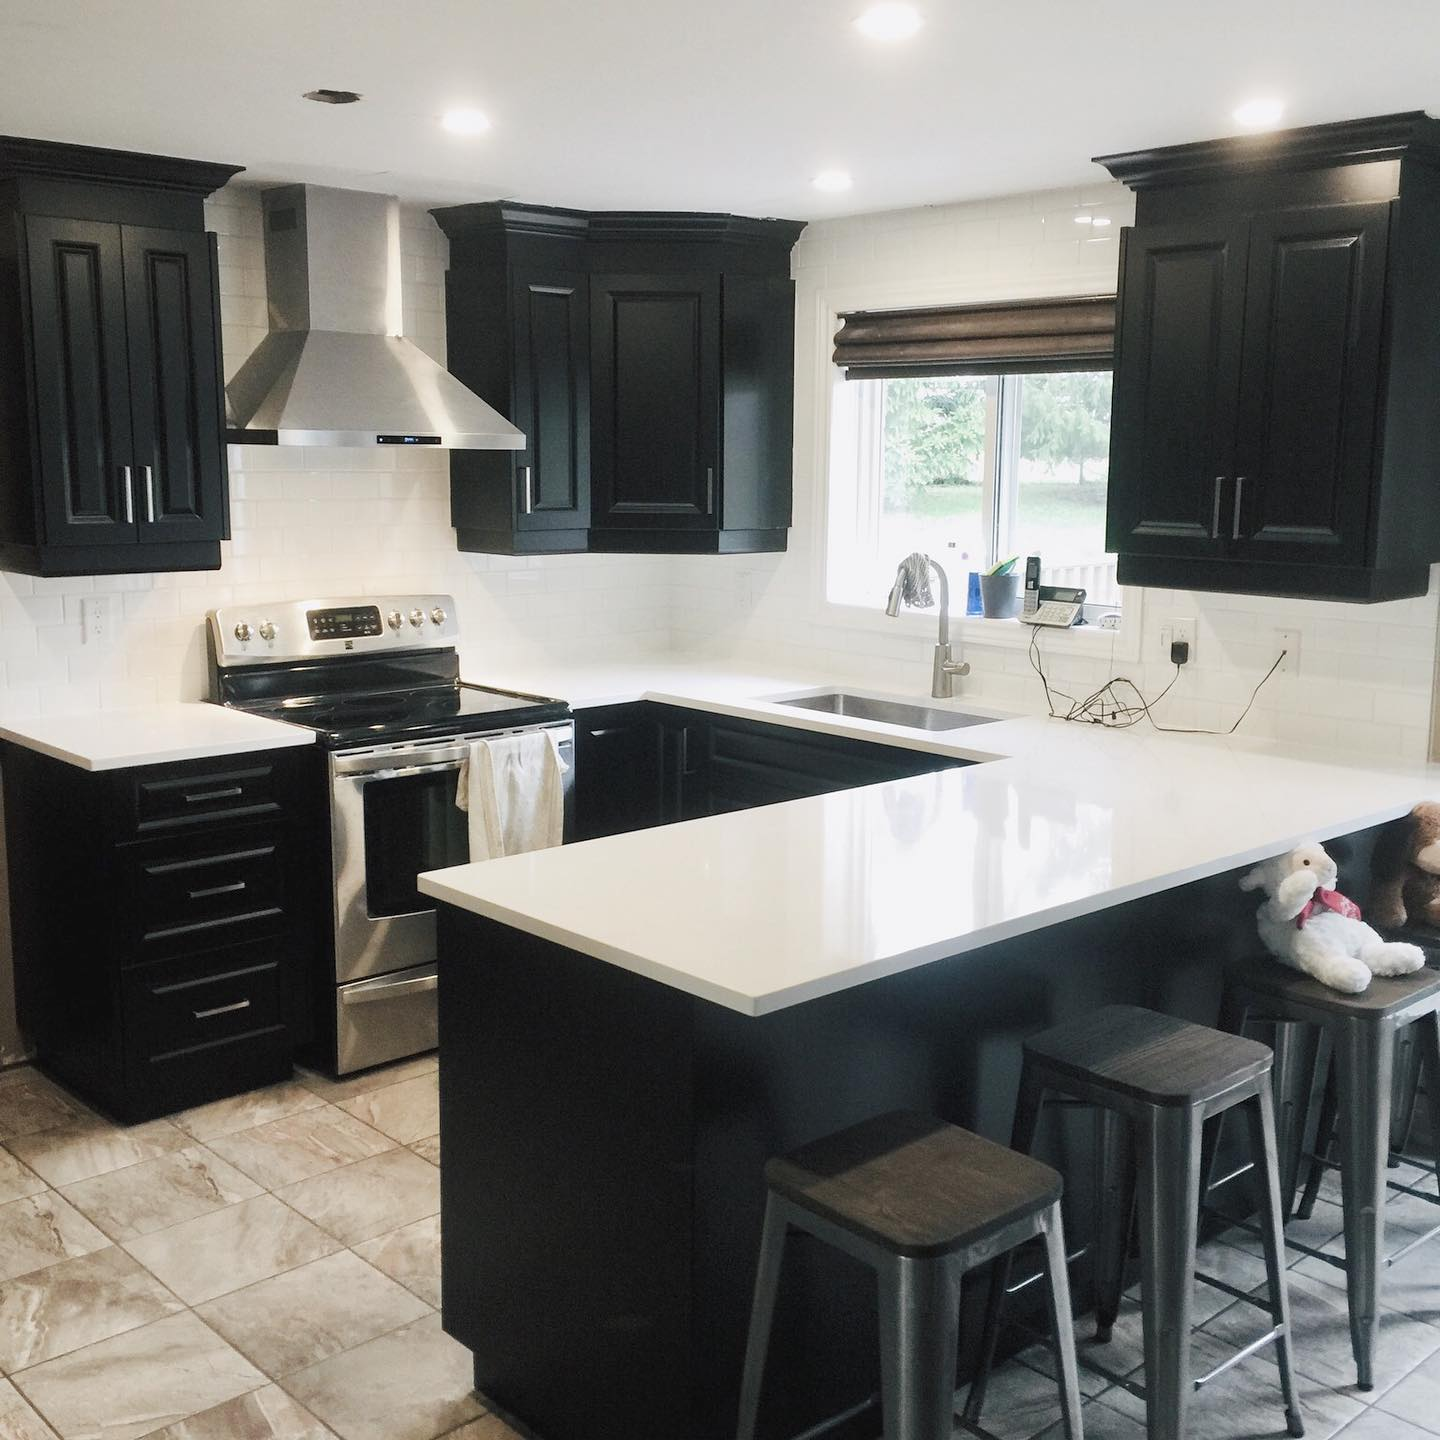 CUSTOM KITCHEN KITCHENER ONTARIO